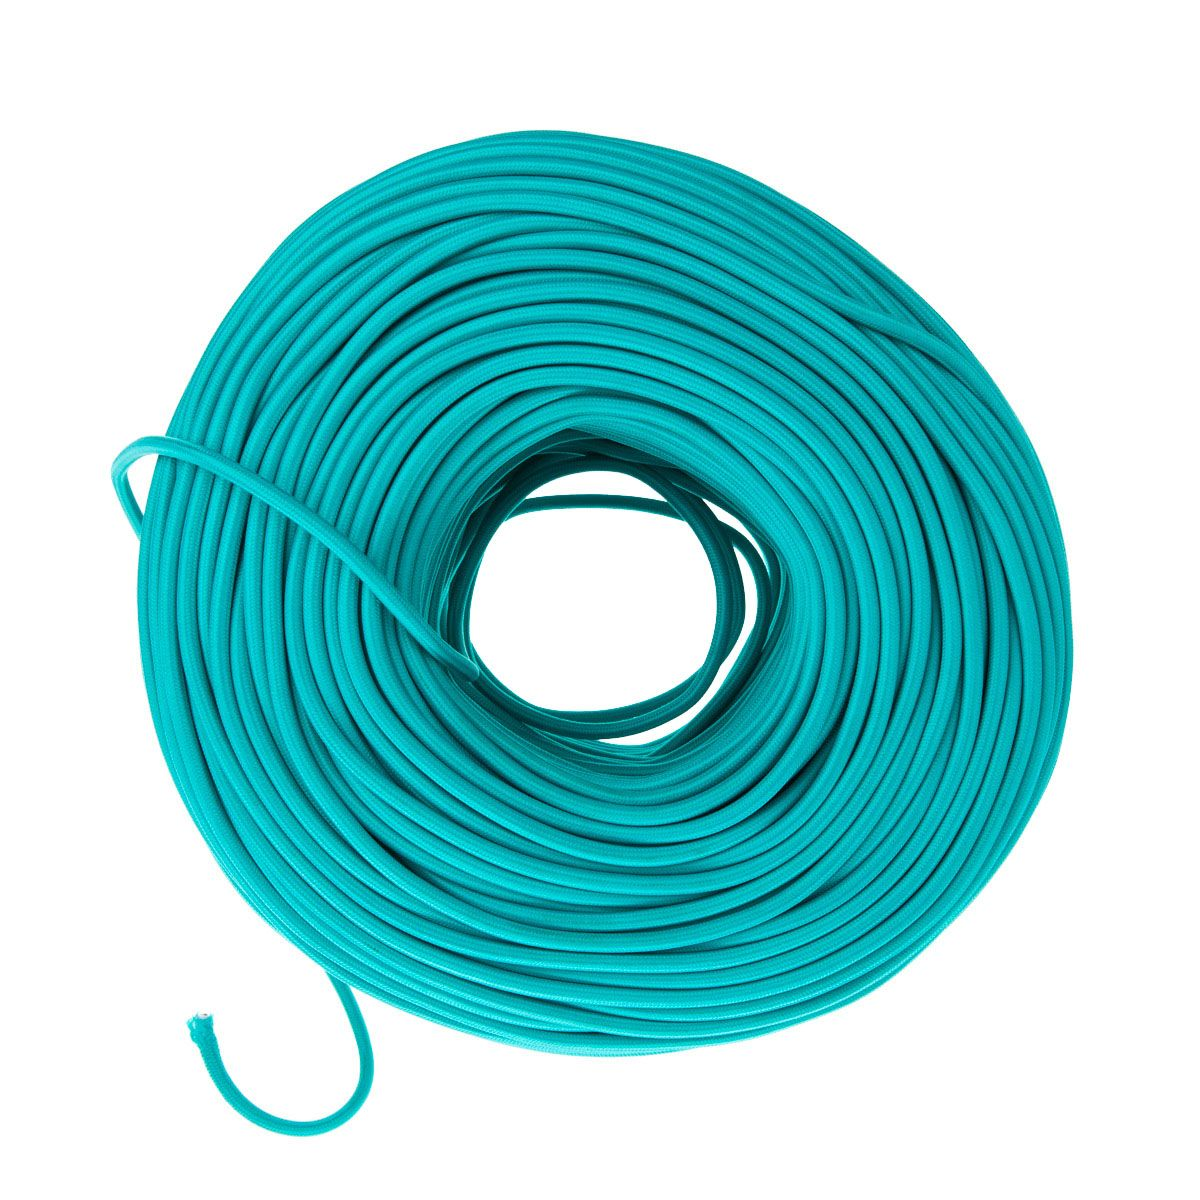 Cloth Covered Electrical Wire - Turquoise | Color Cord Company